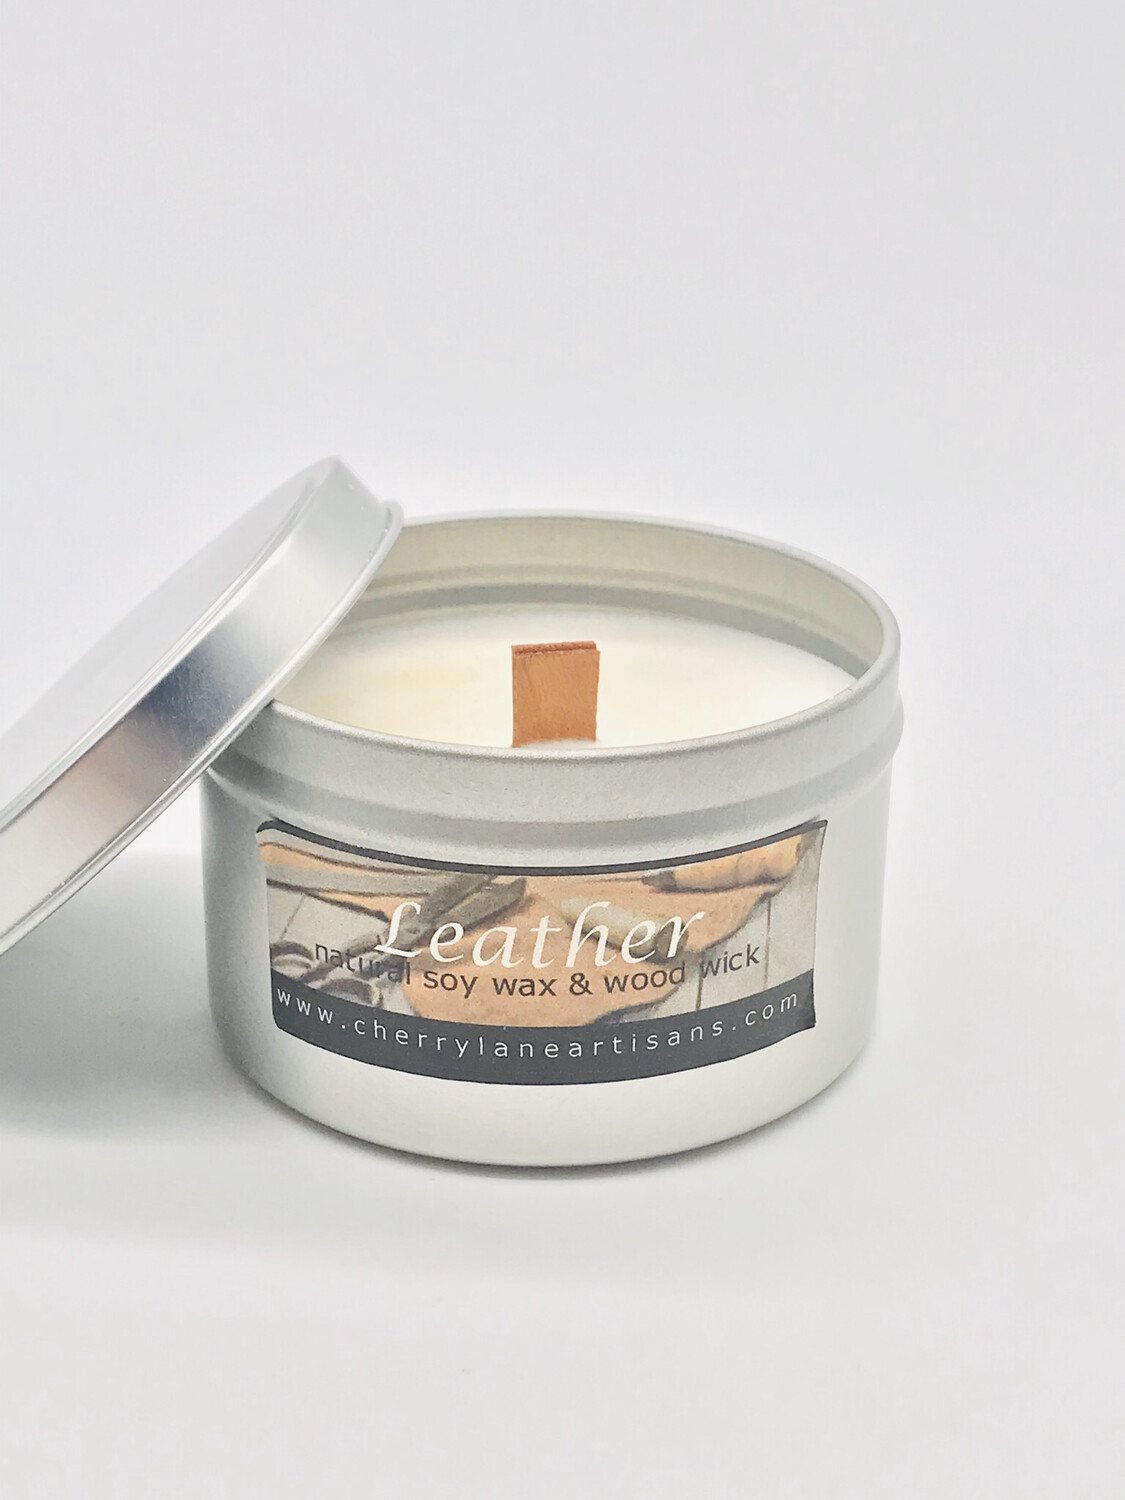 Leather Scented Soy Wax Candle with Wood Wick, 6 oz Tin.